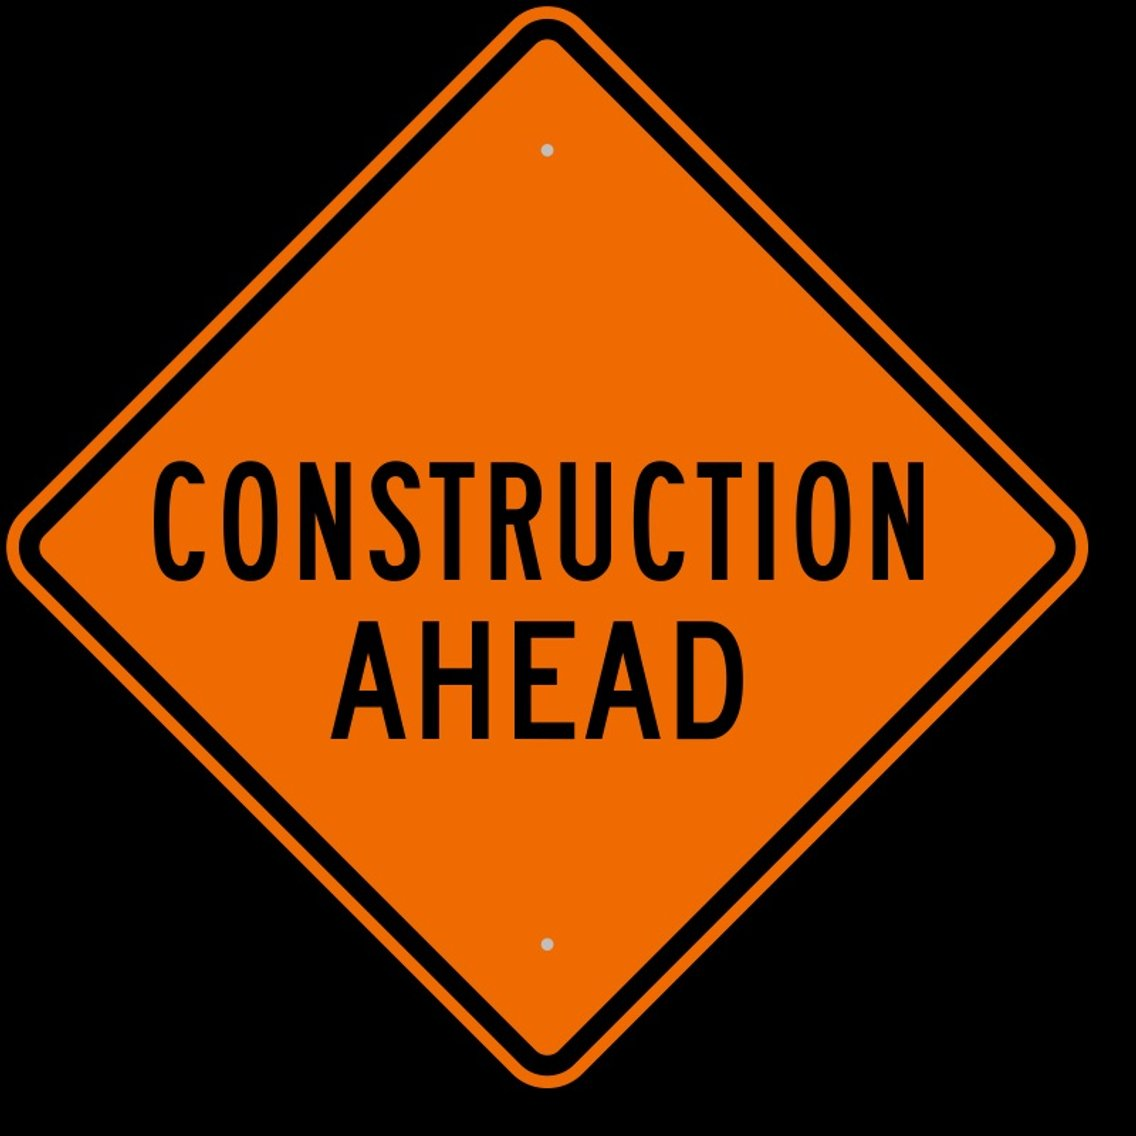 Omaha Daily Road Construction Update - Cover Image